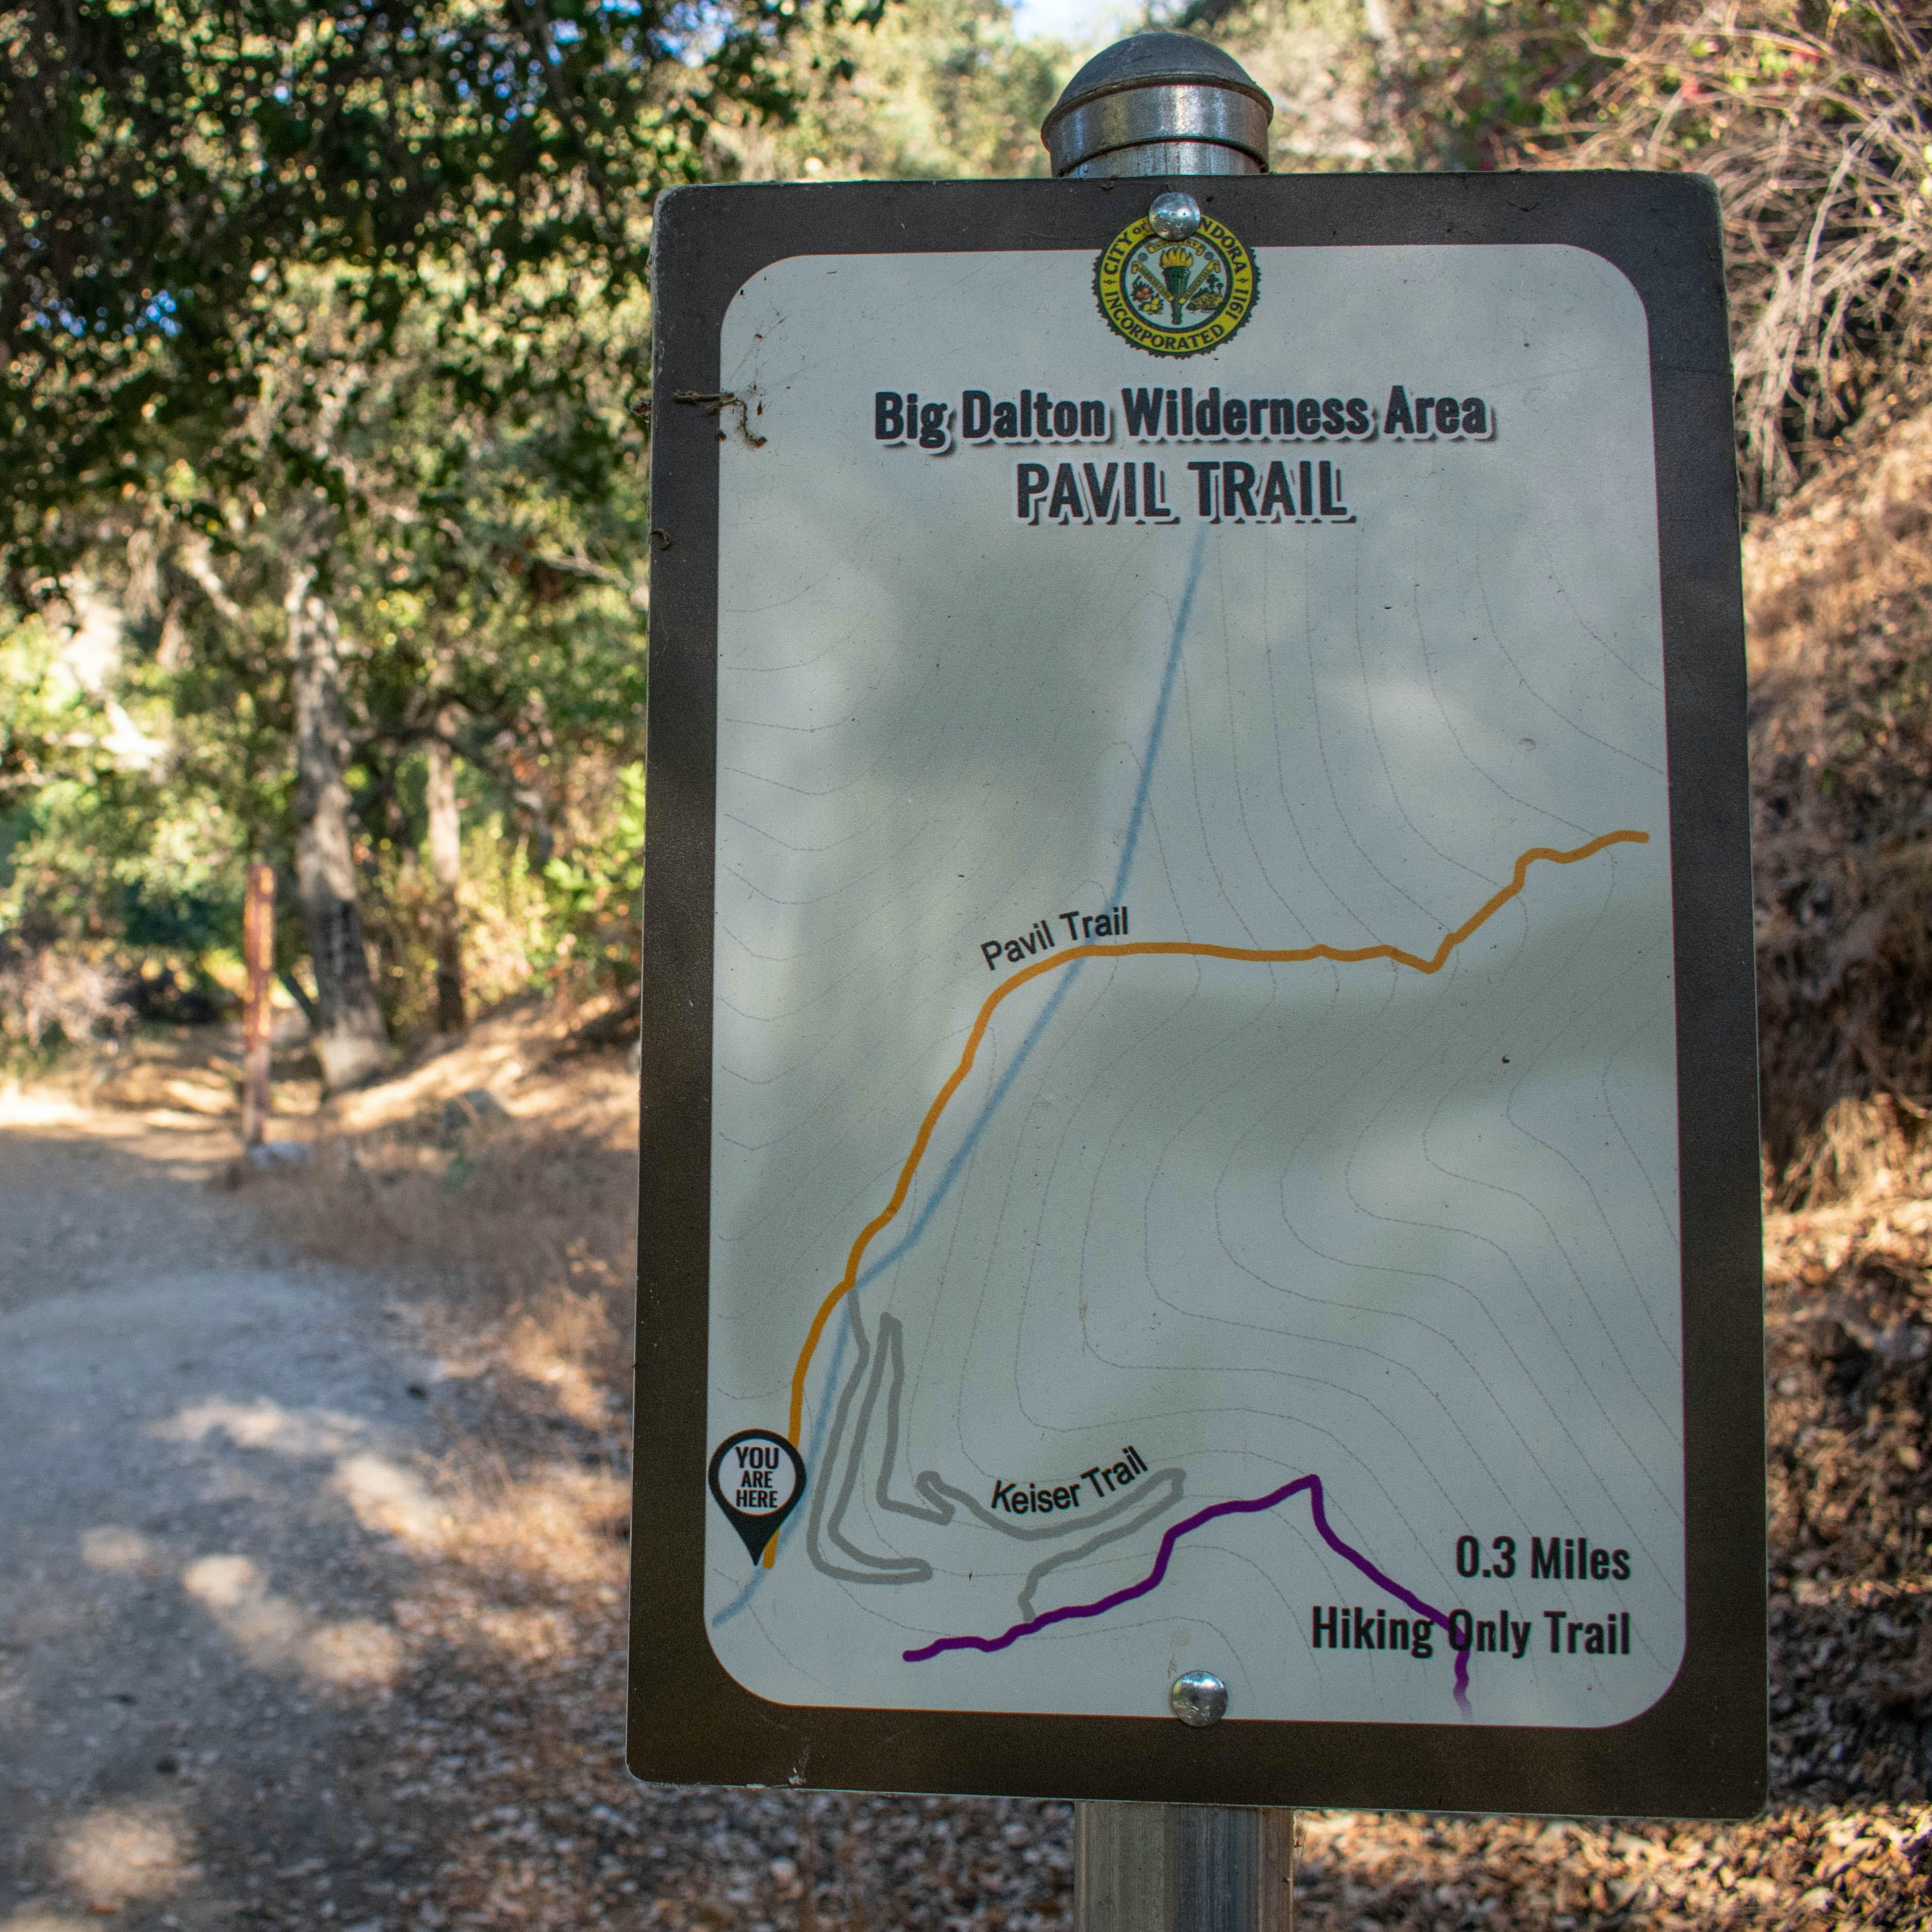 Official trail sign for Big Dalton Canyon Wilderness in Los Angeles County